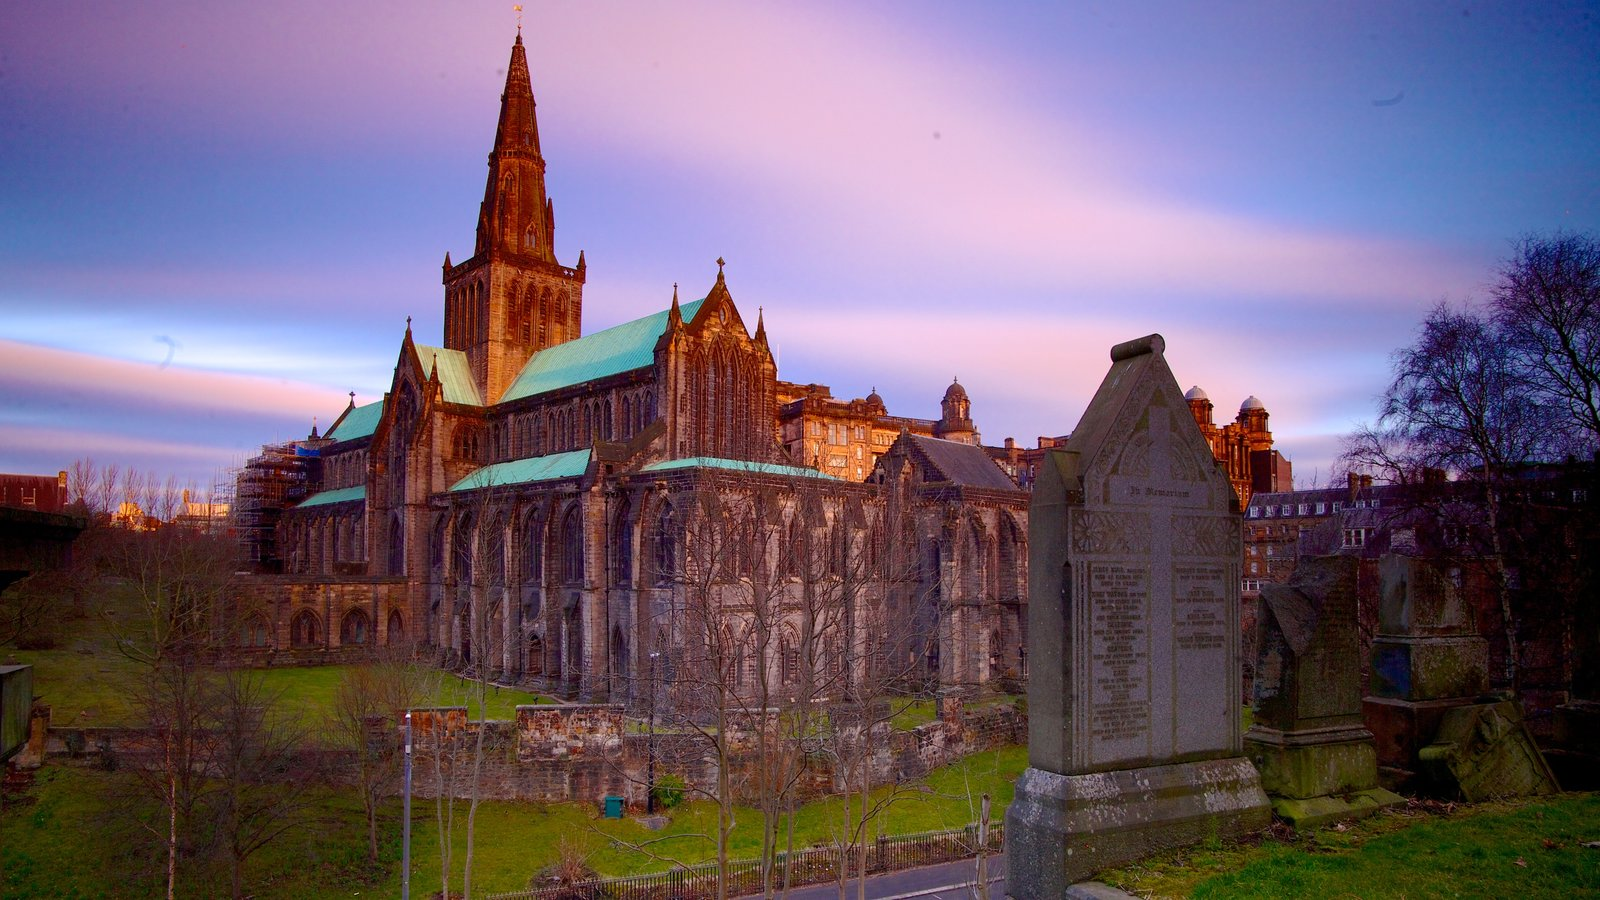 Glasgow Necropolis featuring heritage architecture and a church or cathedral